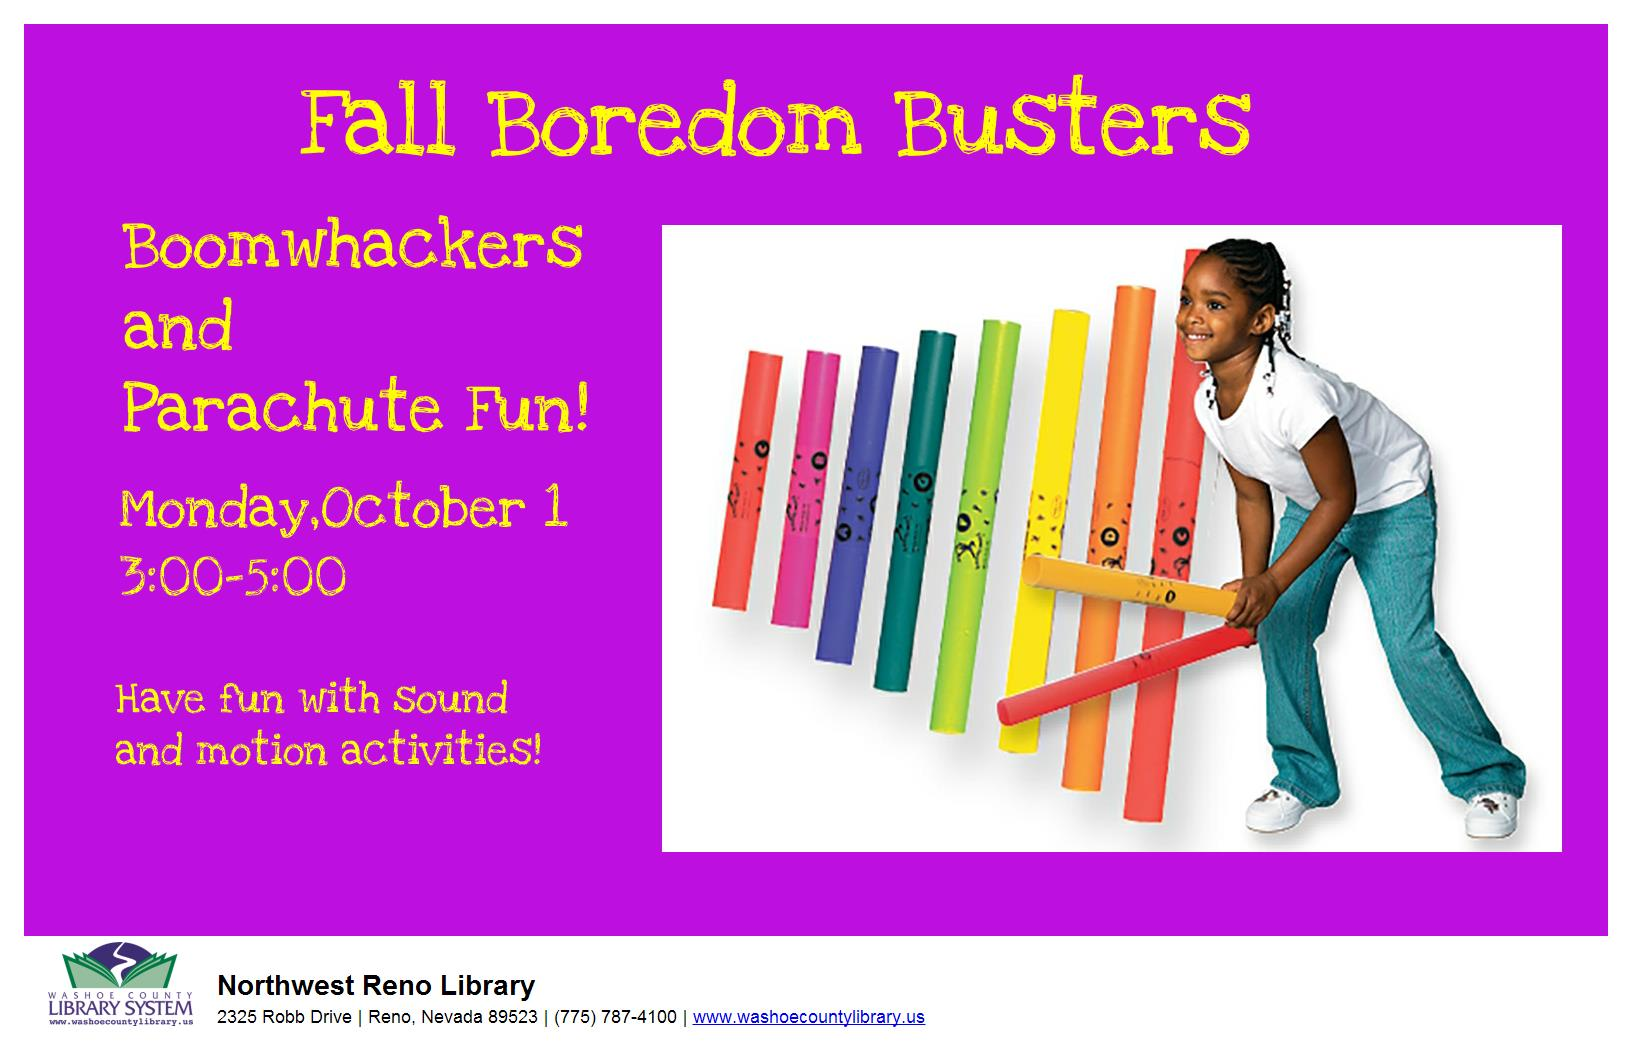 Boredom Busters! Boomwhackers® and Parachute Fun!